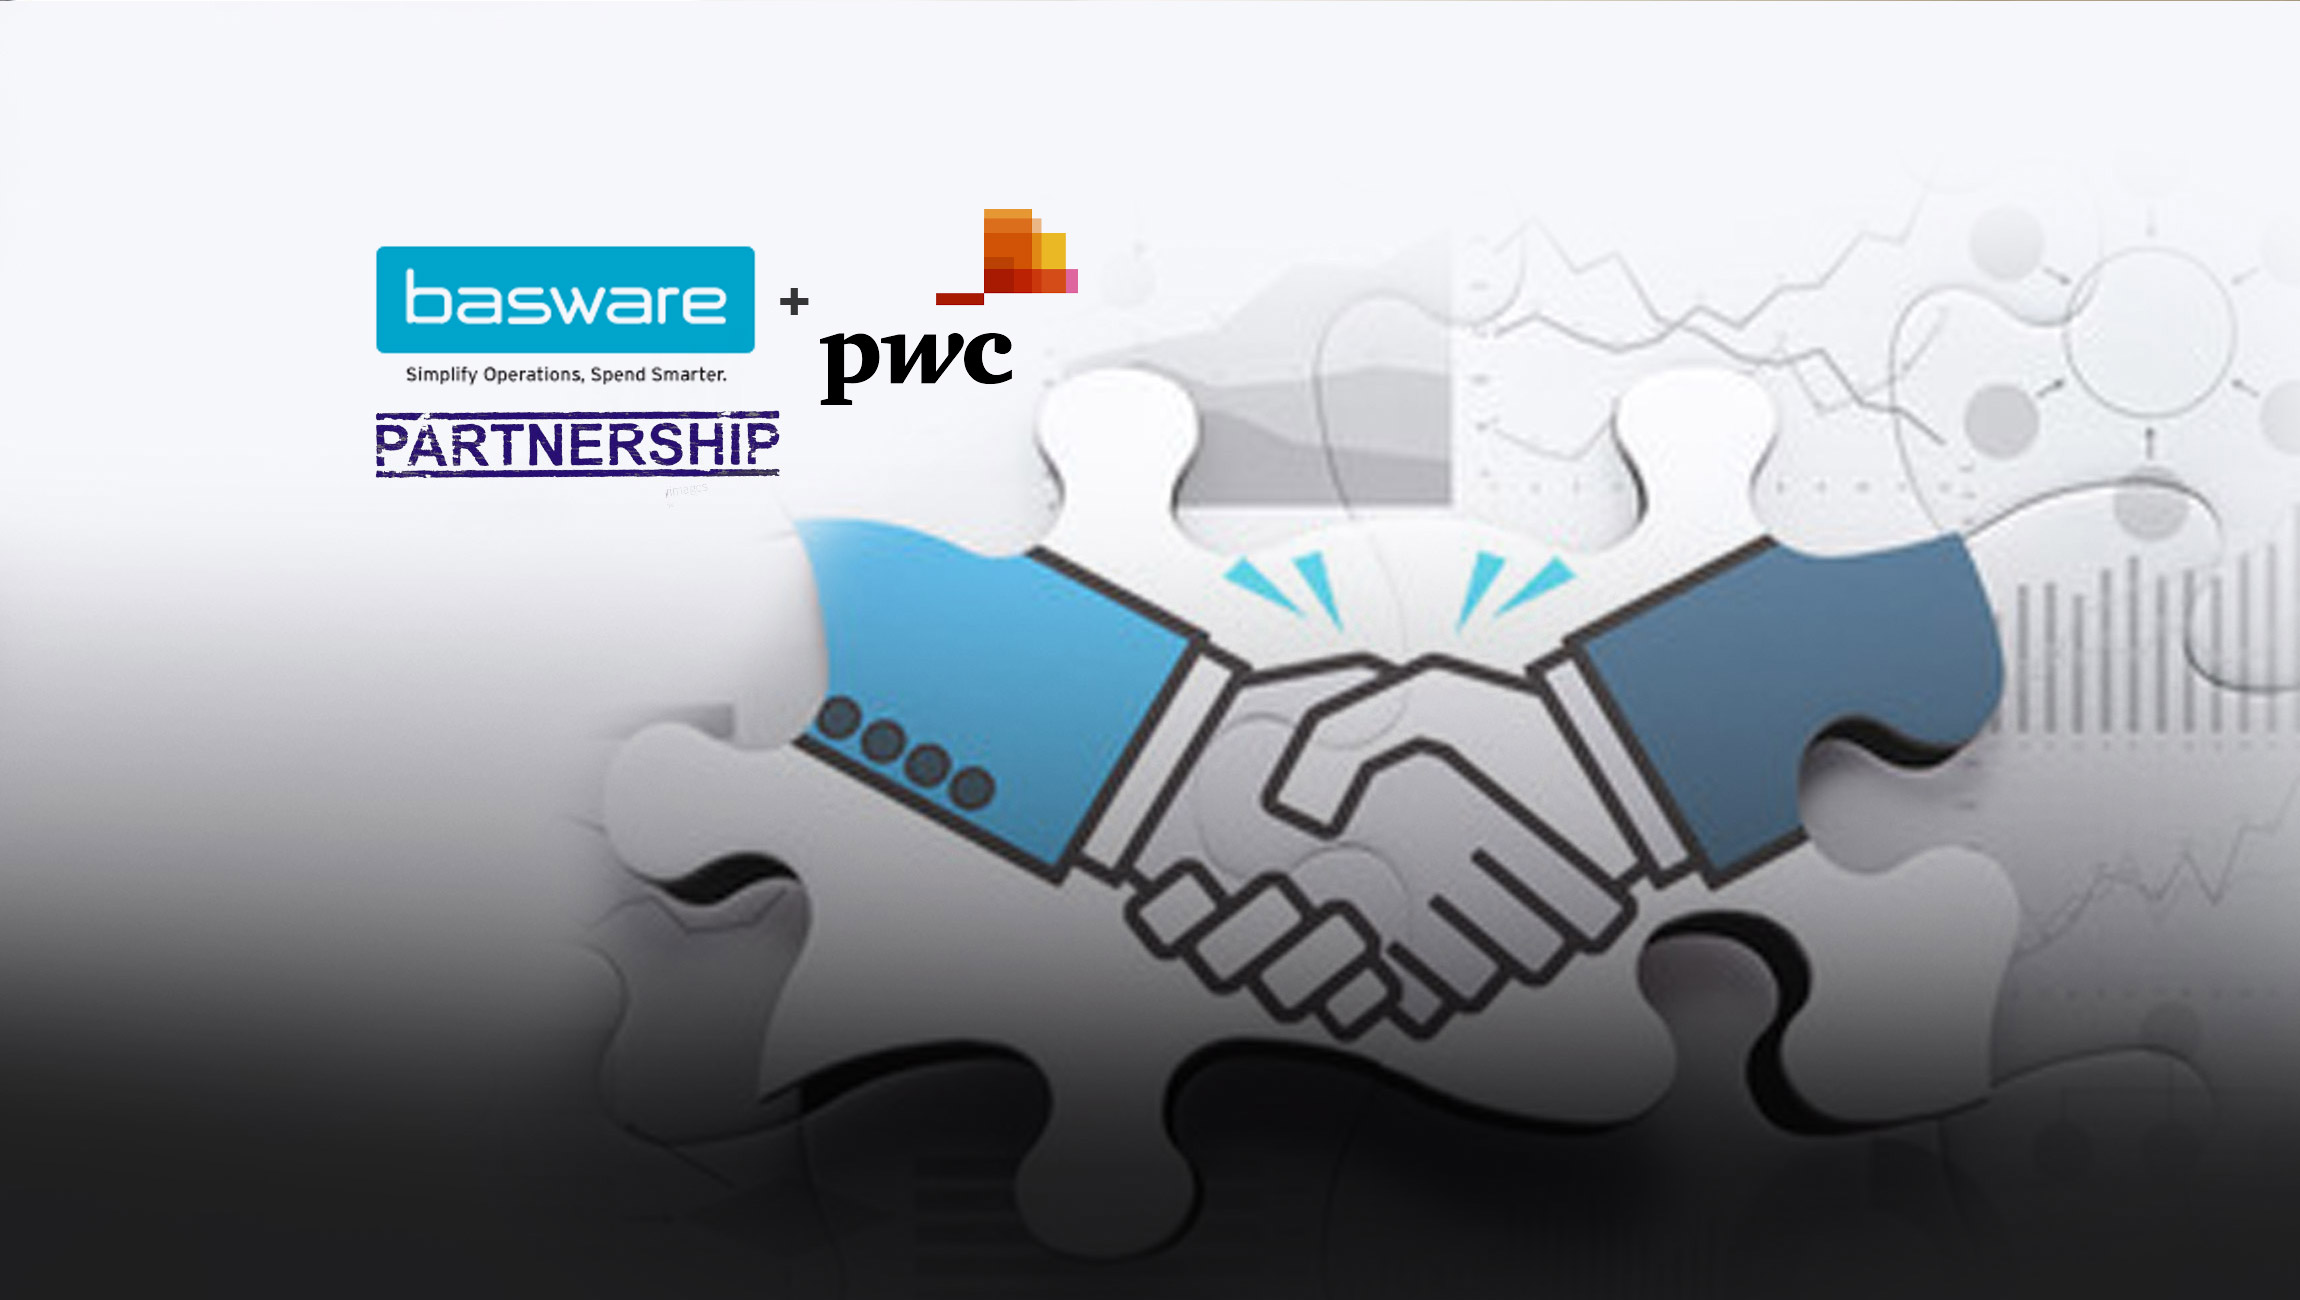 Basware Enters Partnership with PwC Germany, Signs First Joint Customer Deal